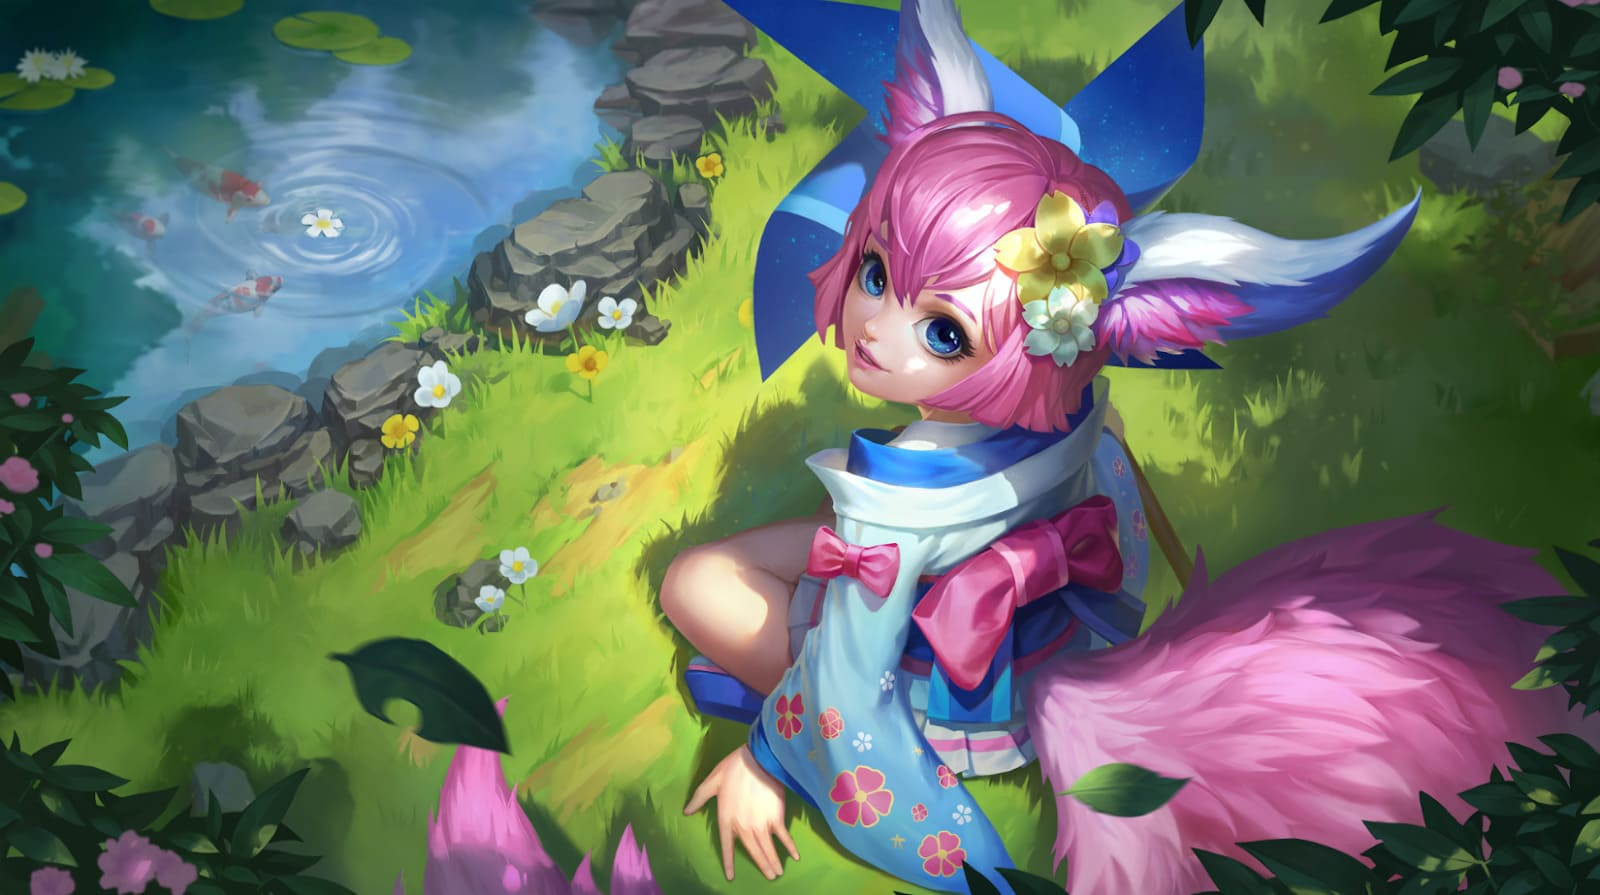 Wallpaper Nana Wind Fairy Skin Mobile Legends HD for PC